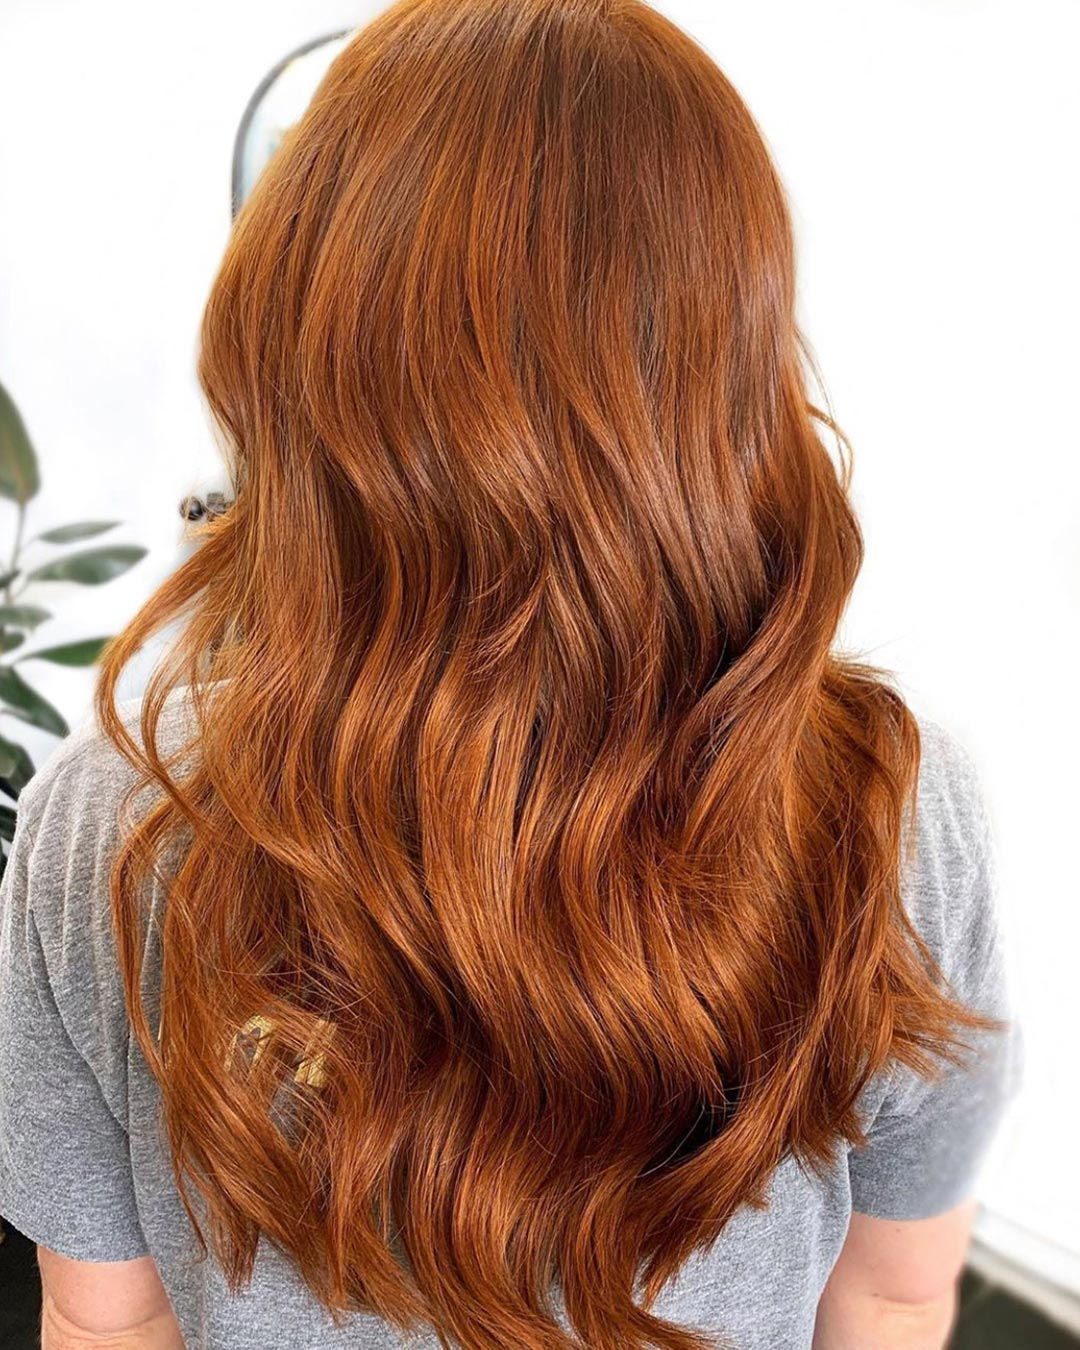 Natural copper hair color with weft extensions added for length and volume.